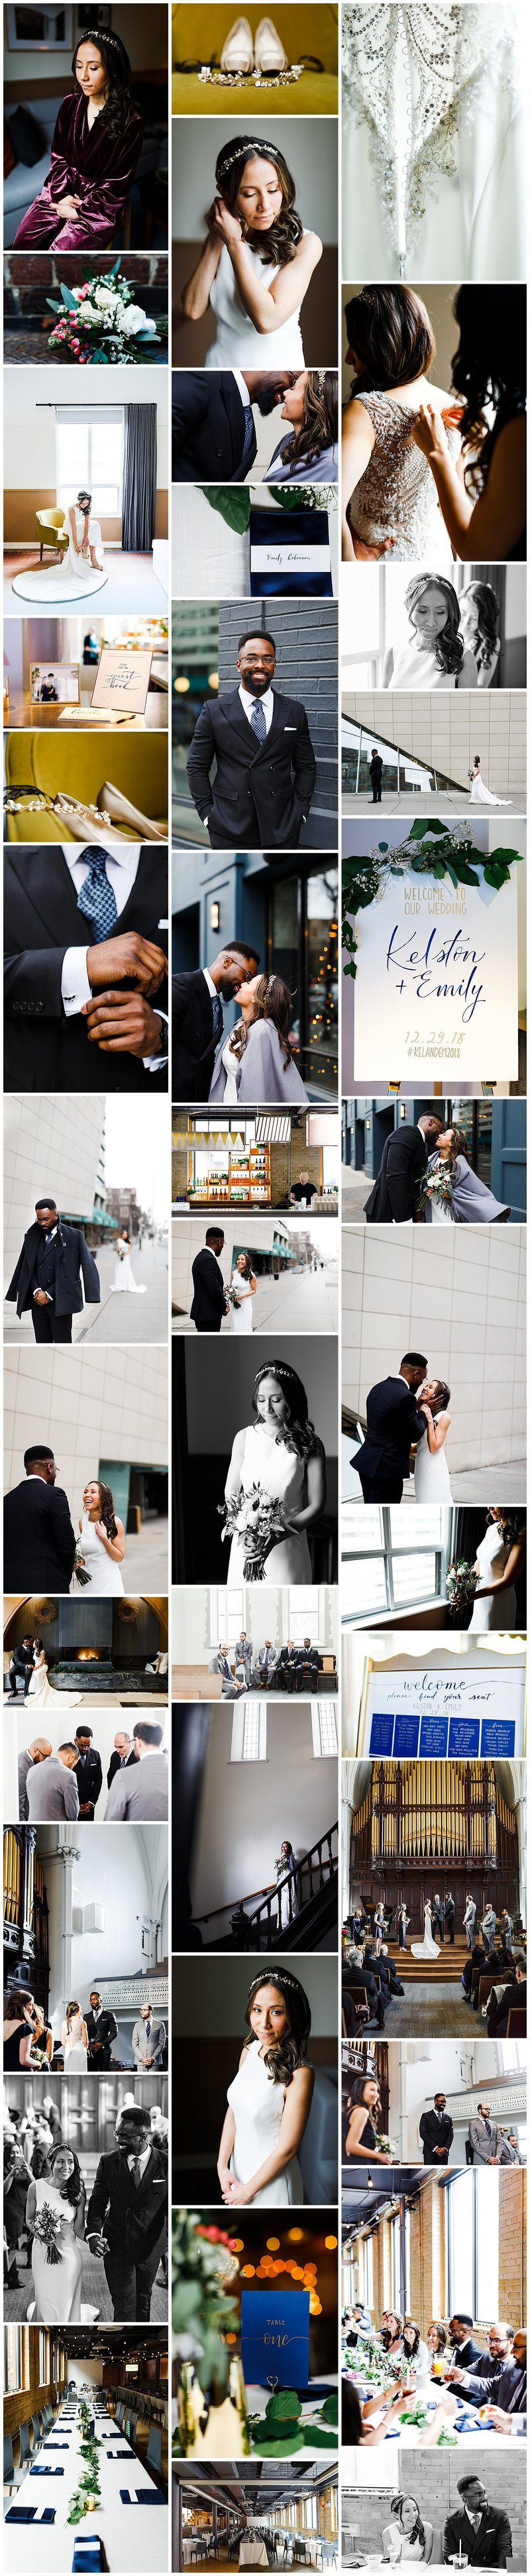 Wedding Gallery Second Floor Events Emily and Kelston